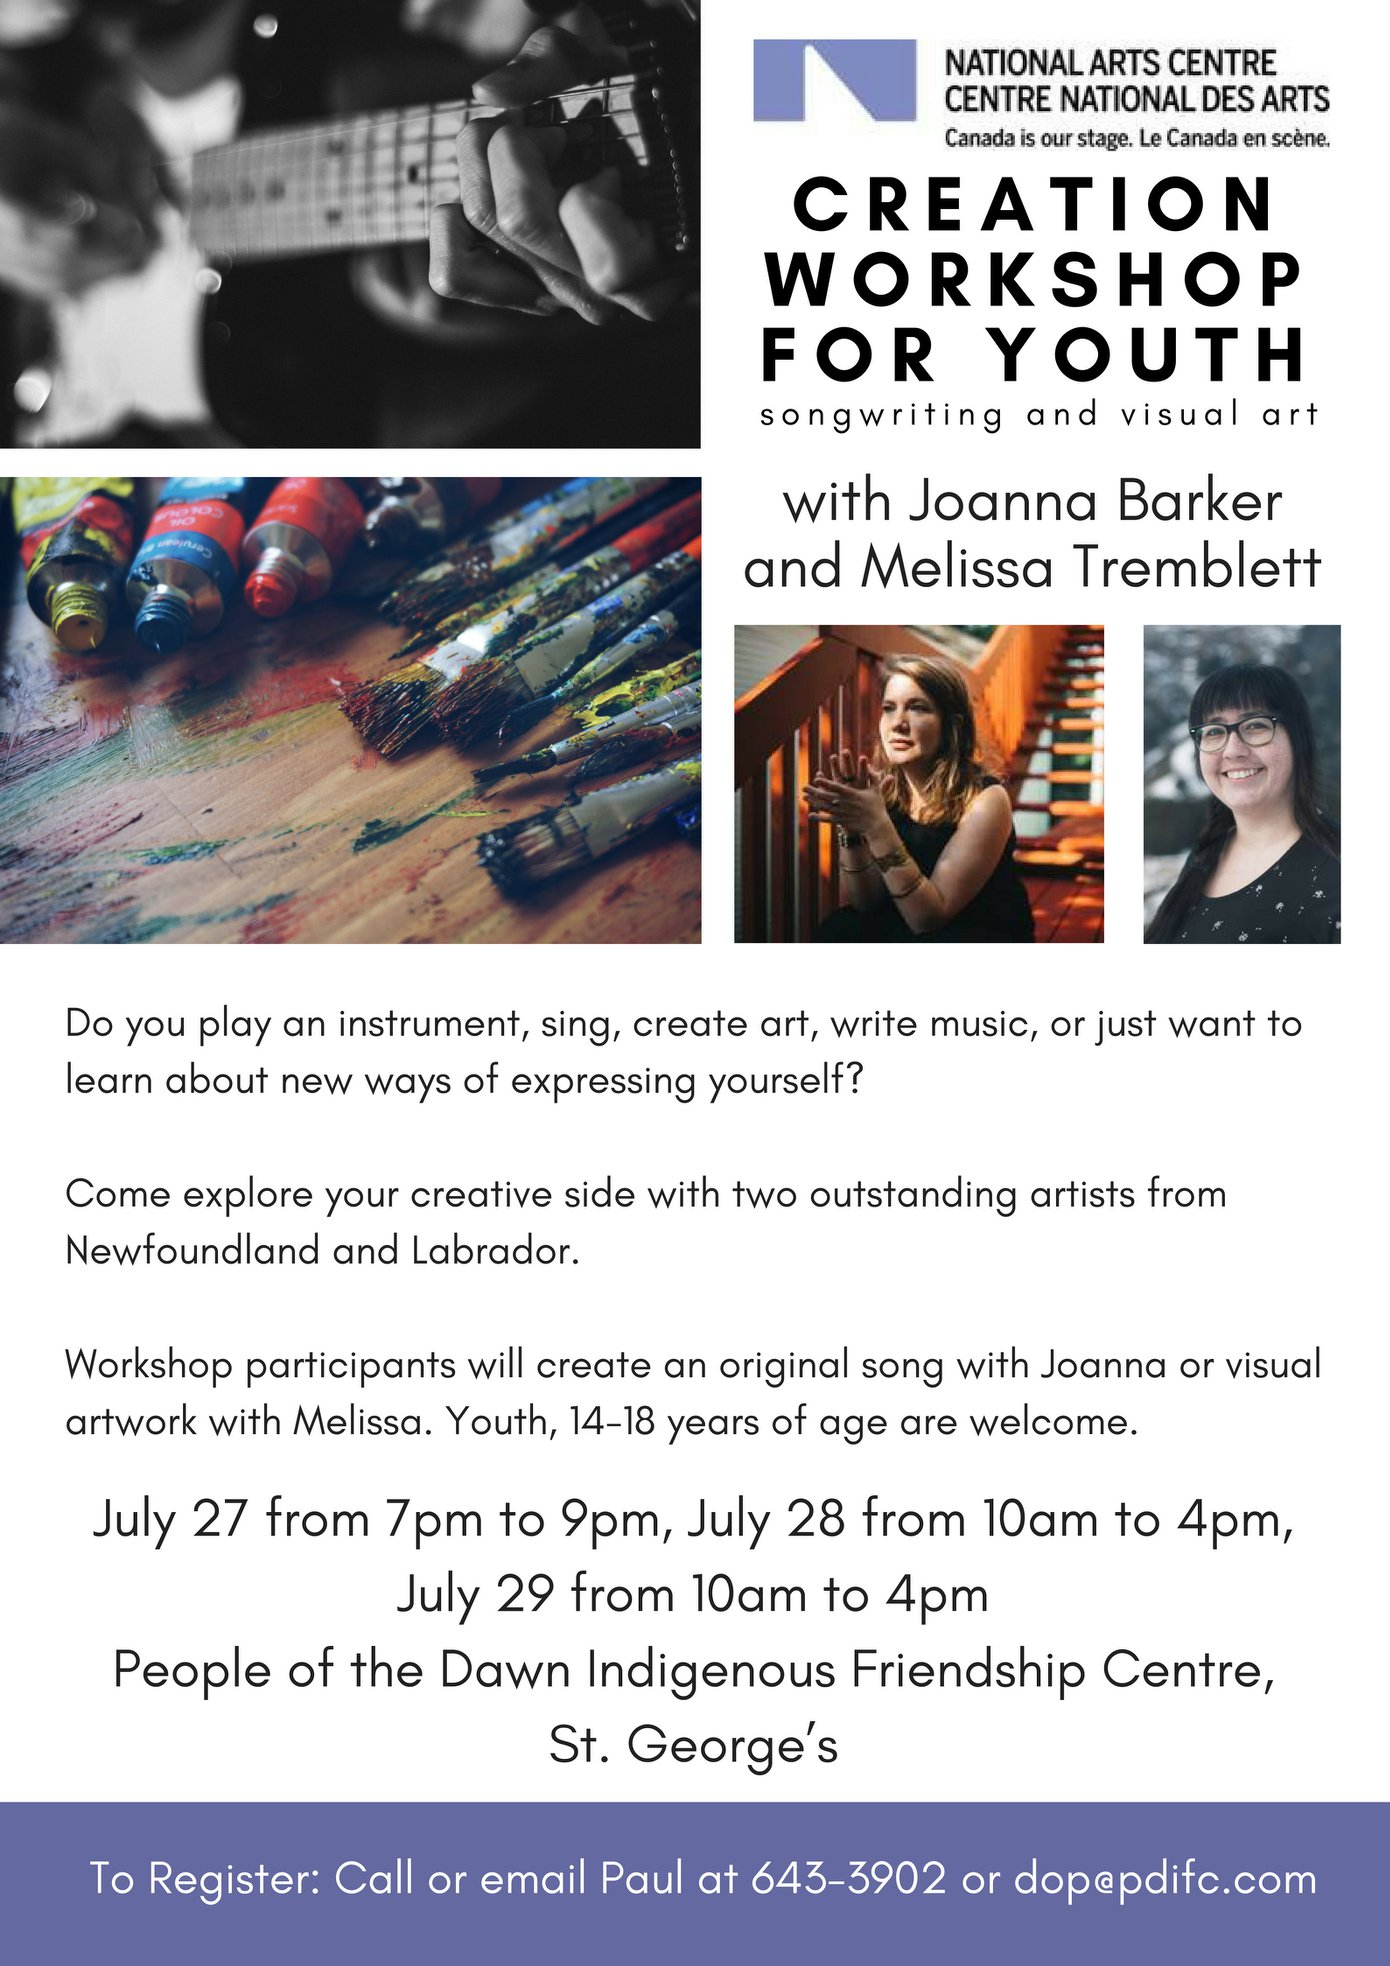 Creation Workshop for Youth